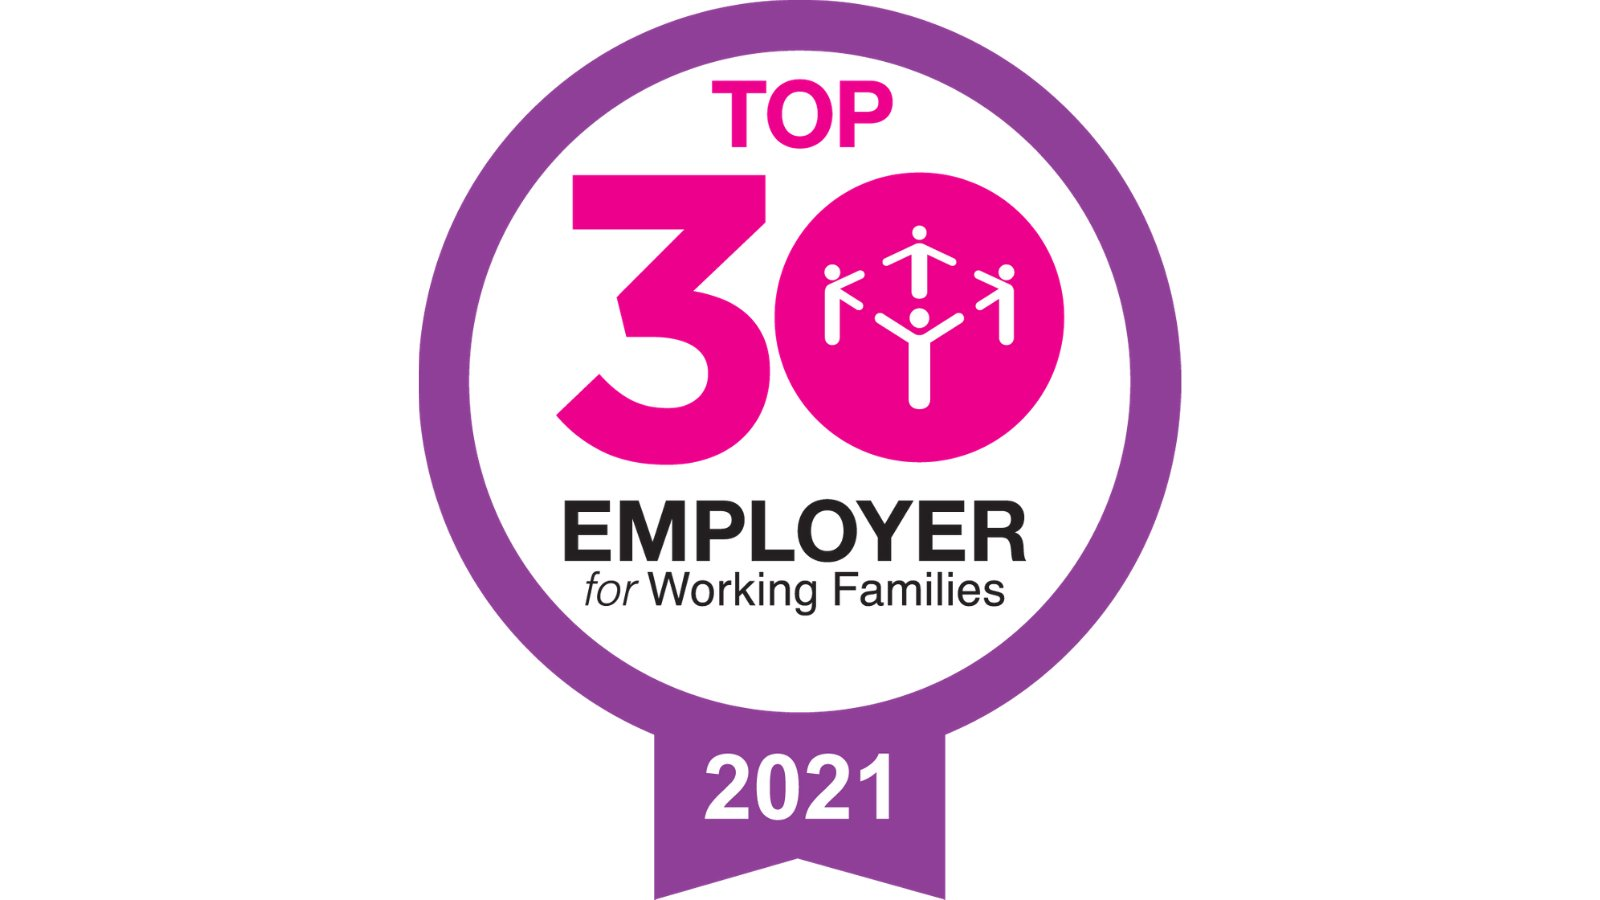 Working families top 30